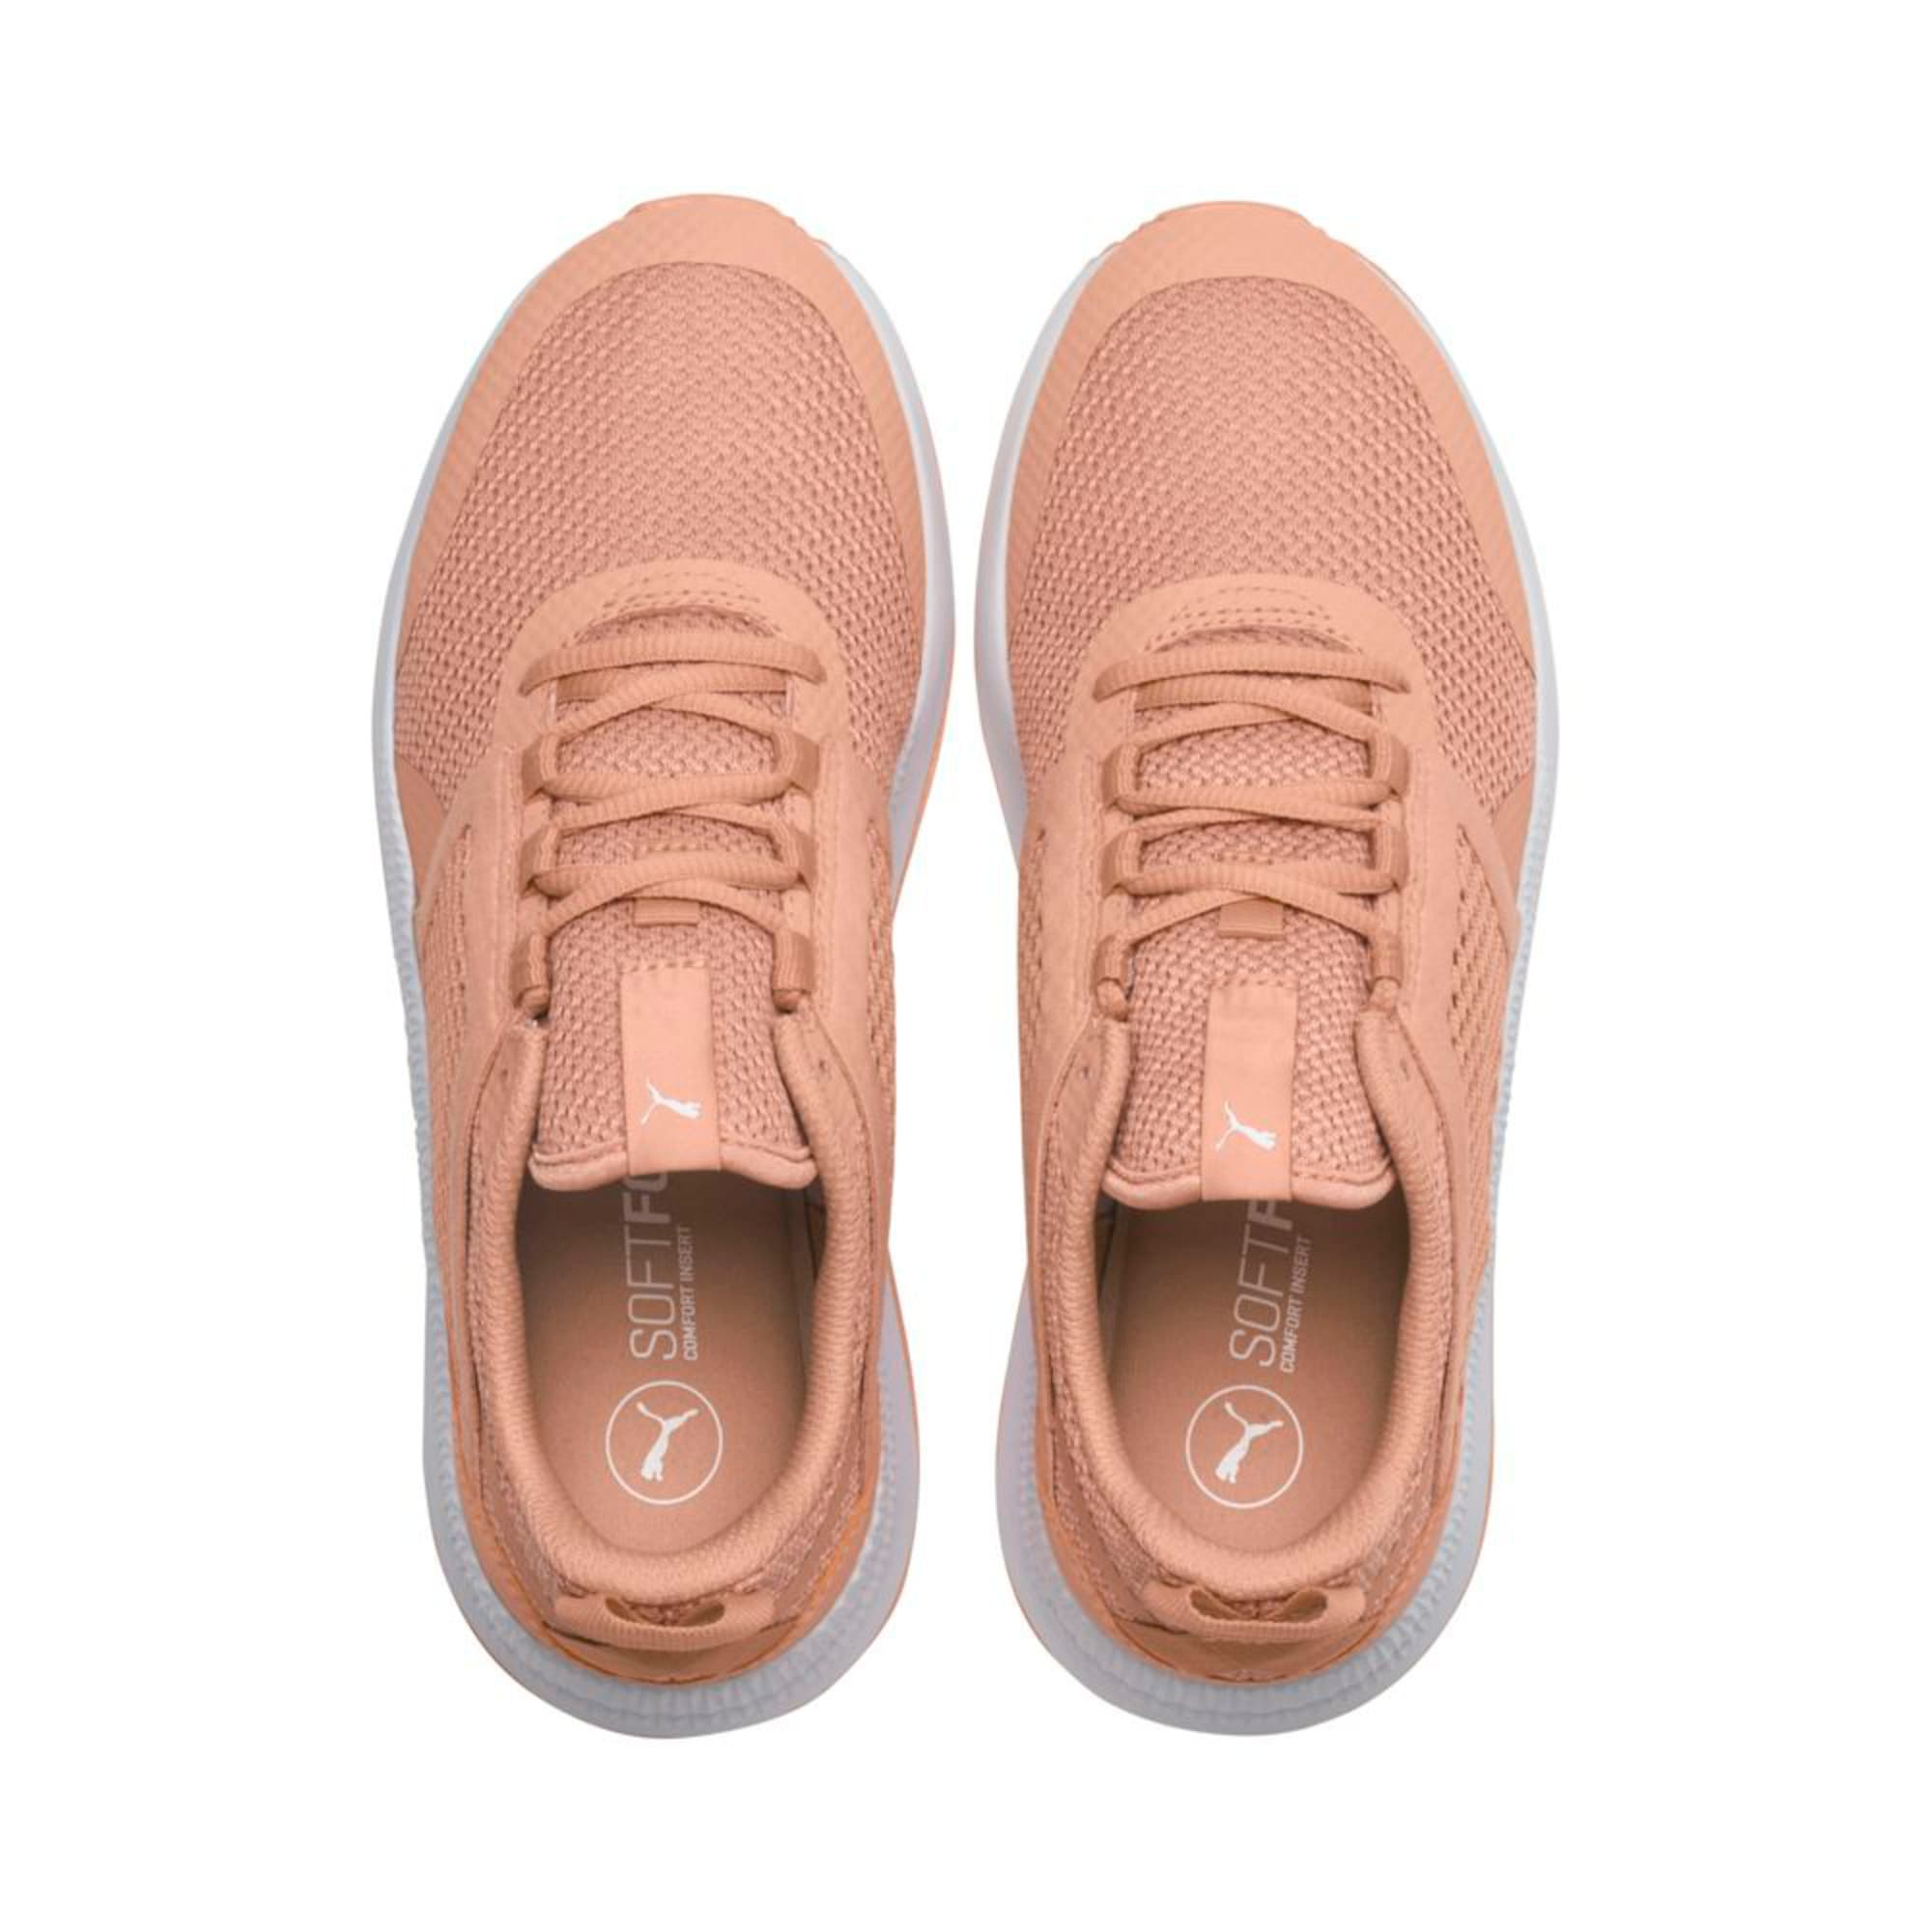 Thumbnail 3 of Pacer Next Net Trainers, Dusty Coral-Coral-White, medium-IND